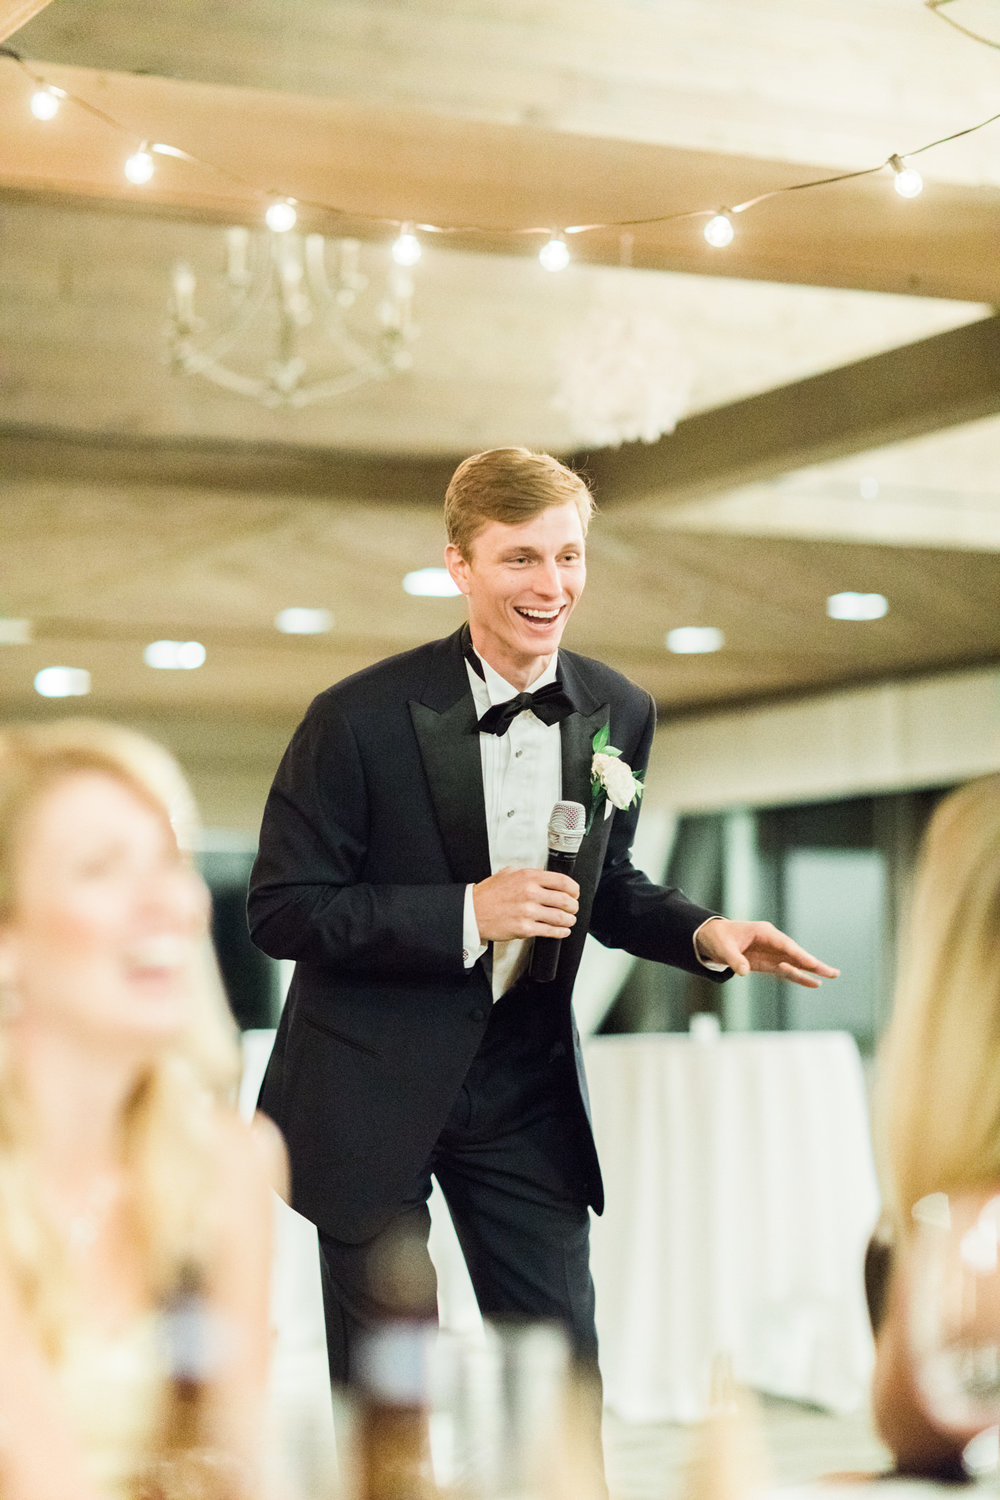 A low light wedding photography example of best man giving speech